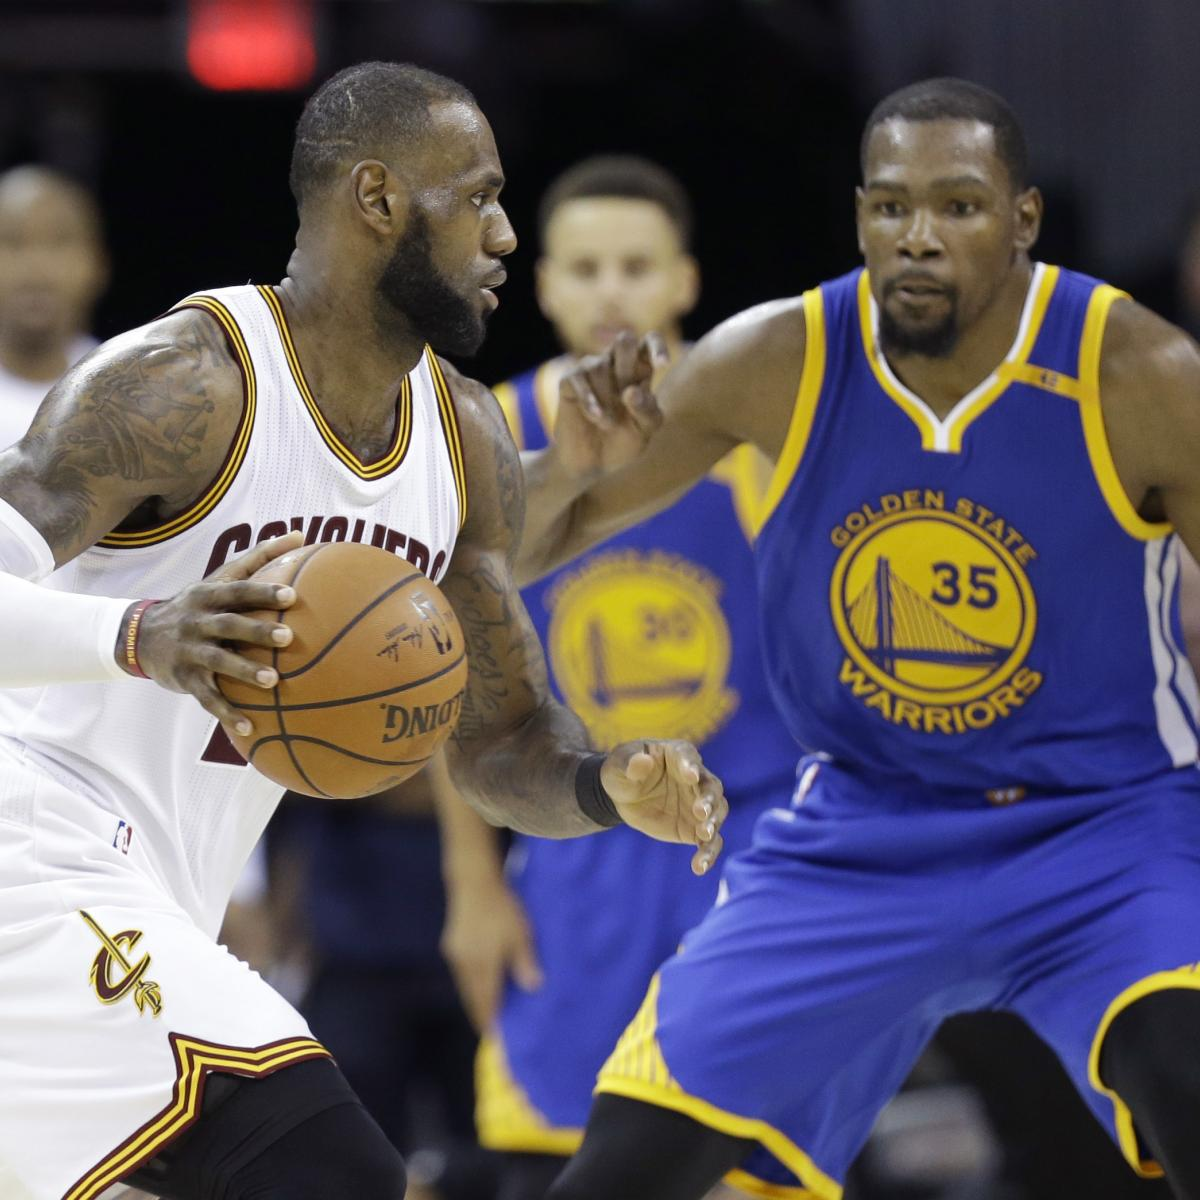 NBA Finals 2018: Warriors vs. Cavs Game 1 Vegas Odds, Prop Bets and Predictions